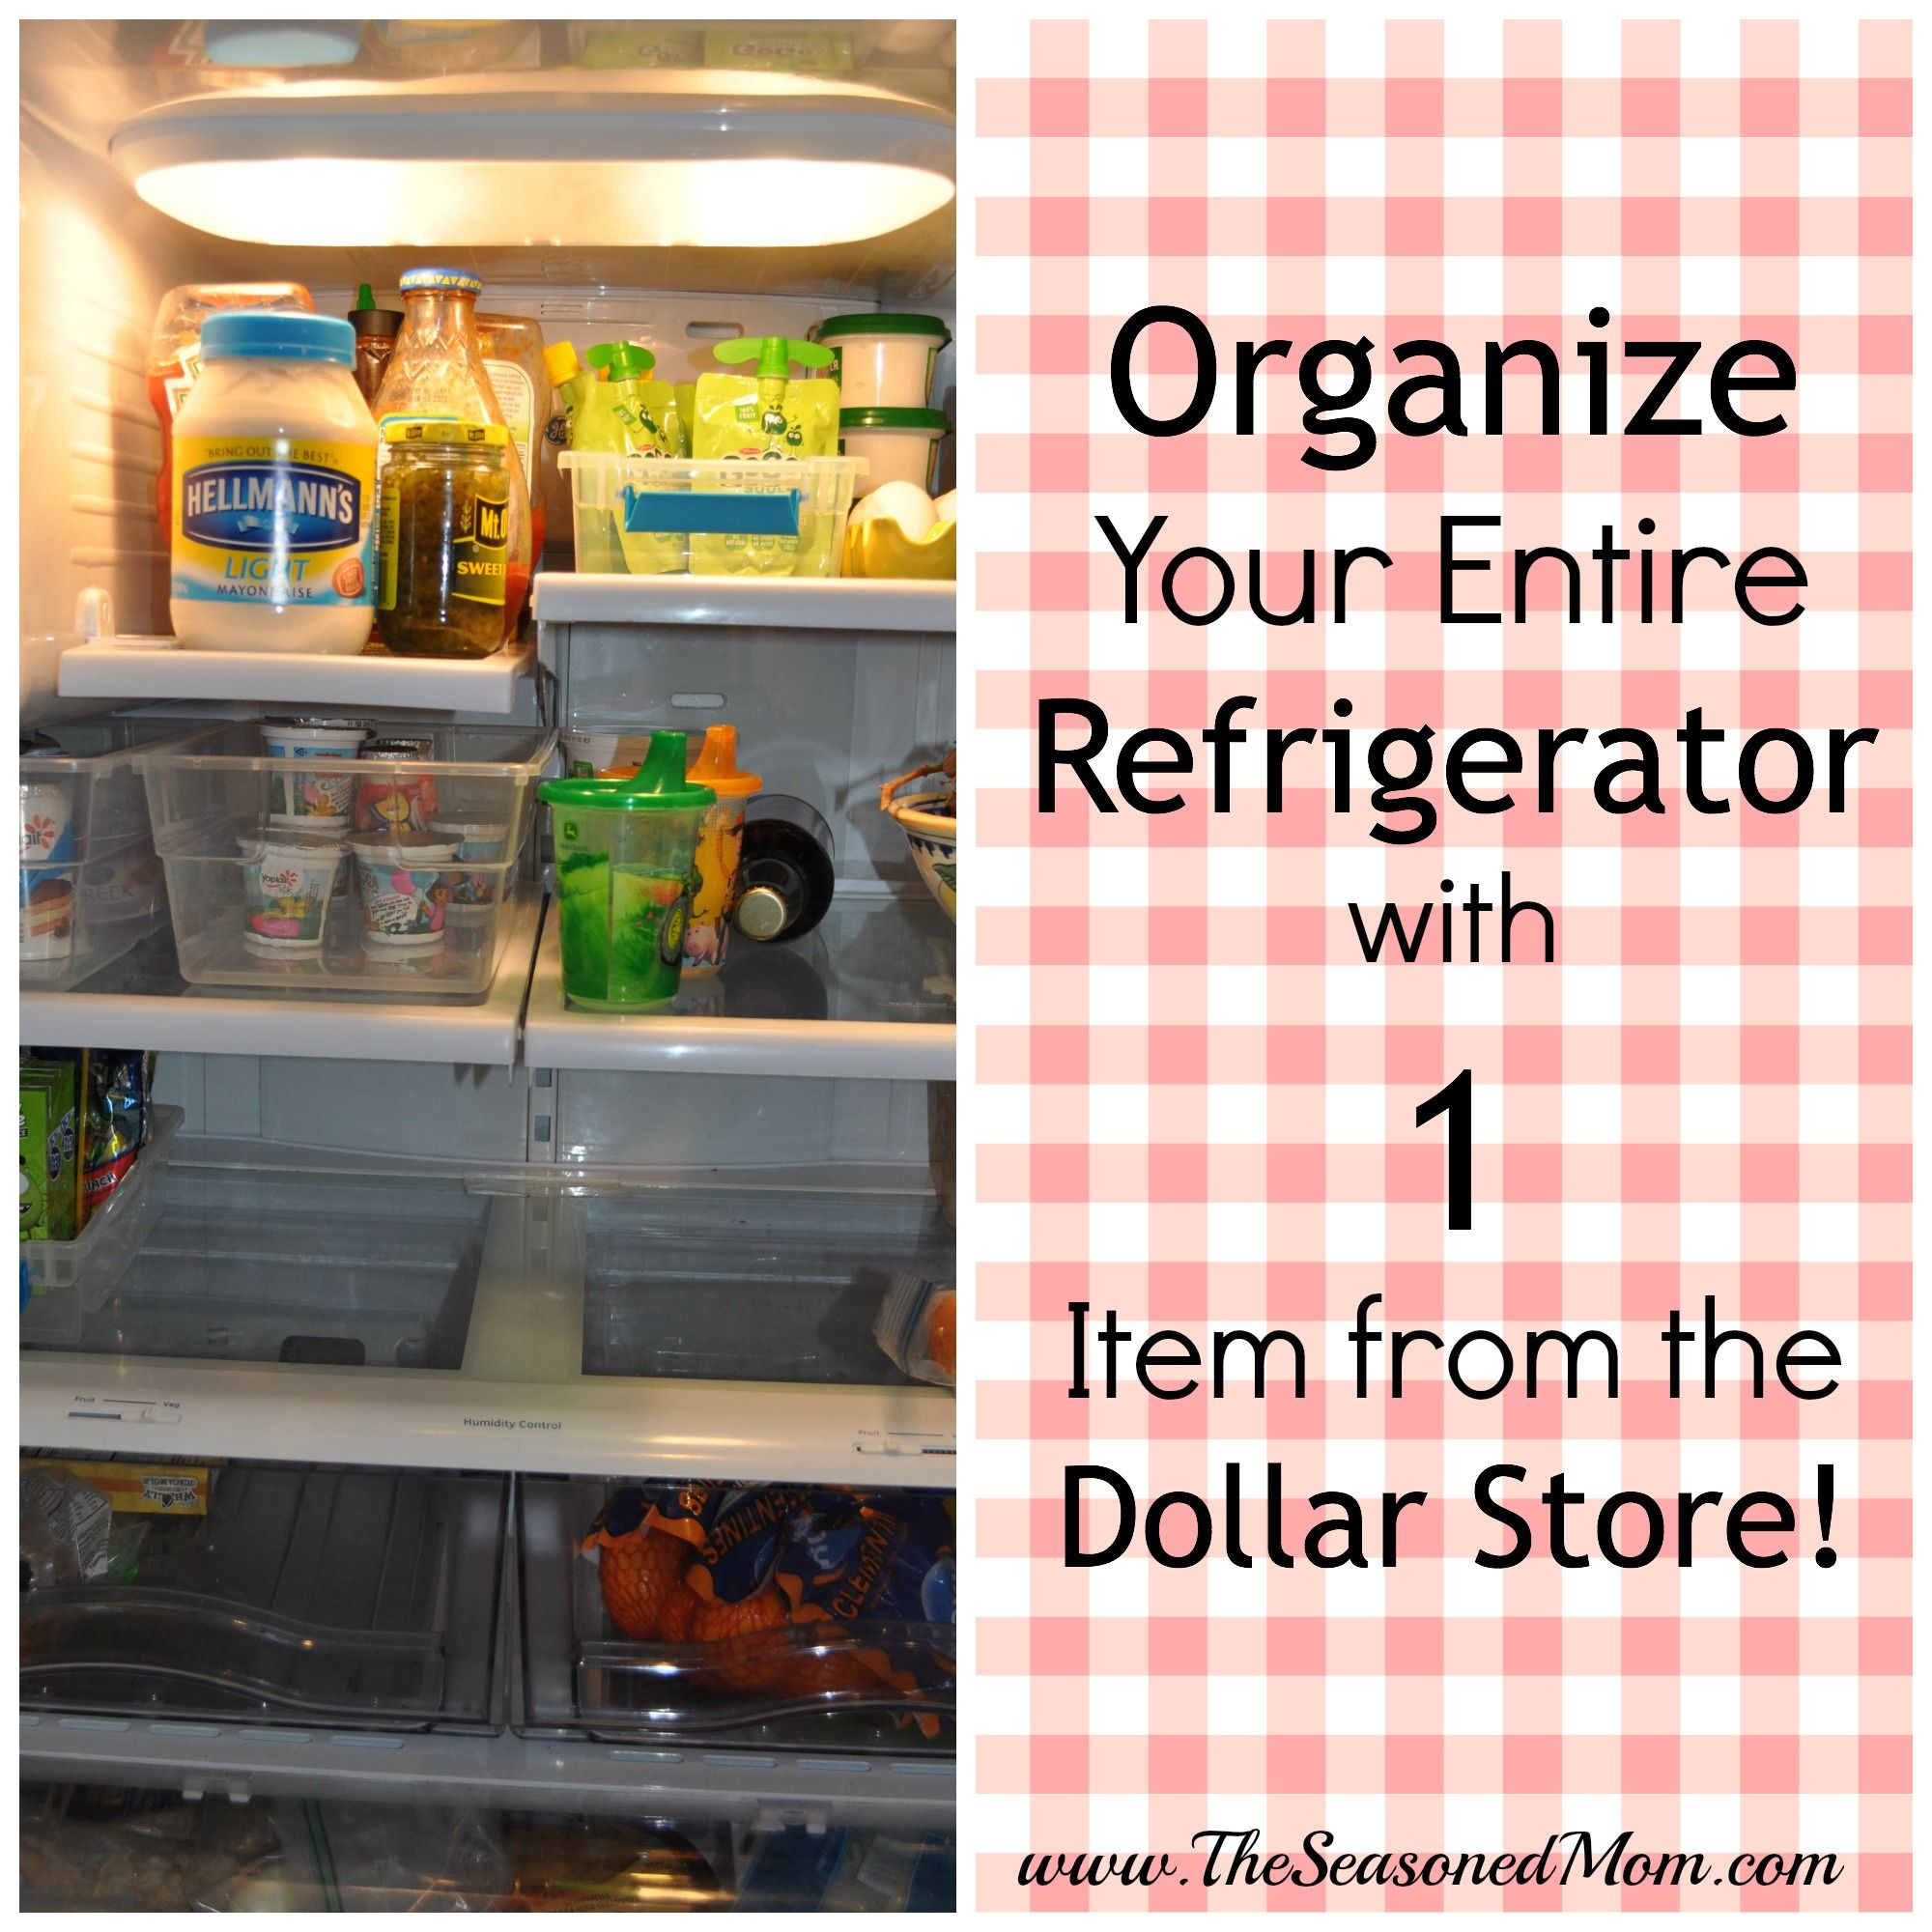 Organizing With Dollar Store Items: Organize Your Entire Refrigerator With 1 Item From The